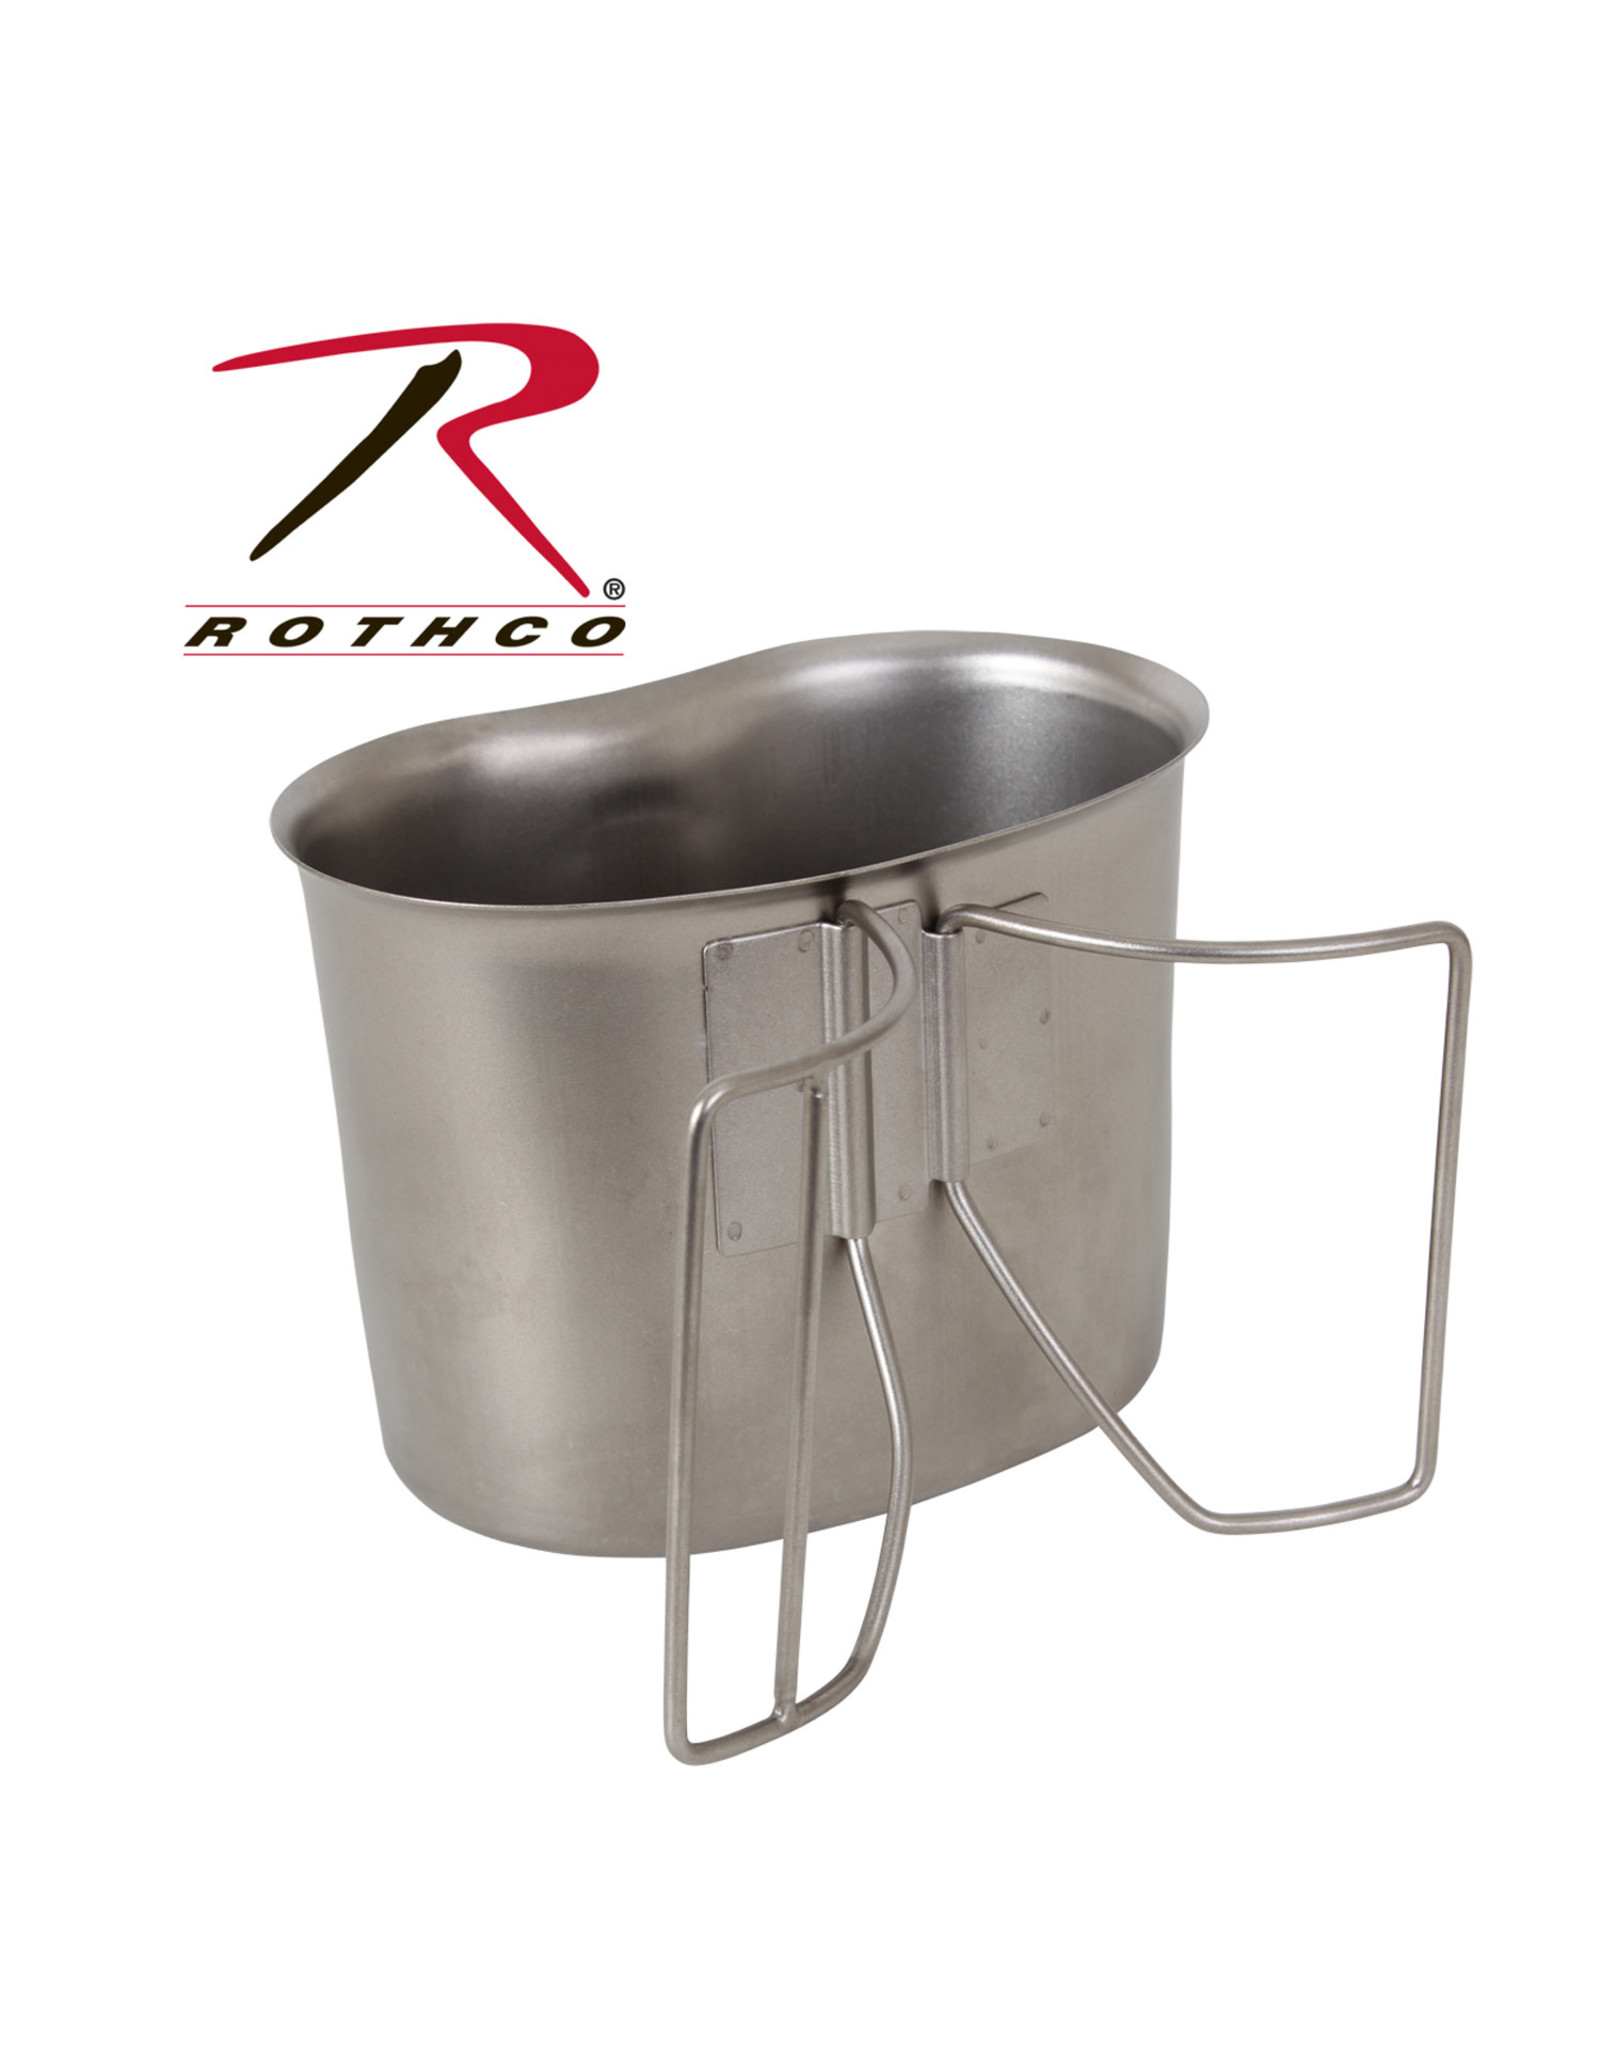 Rothco Rothco Stainless Steel Canteen Cup - NOT GI